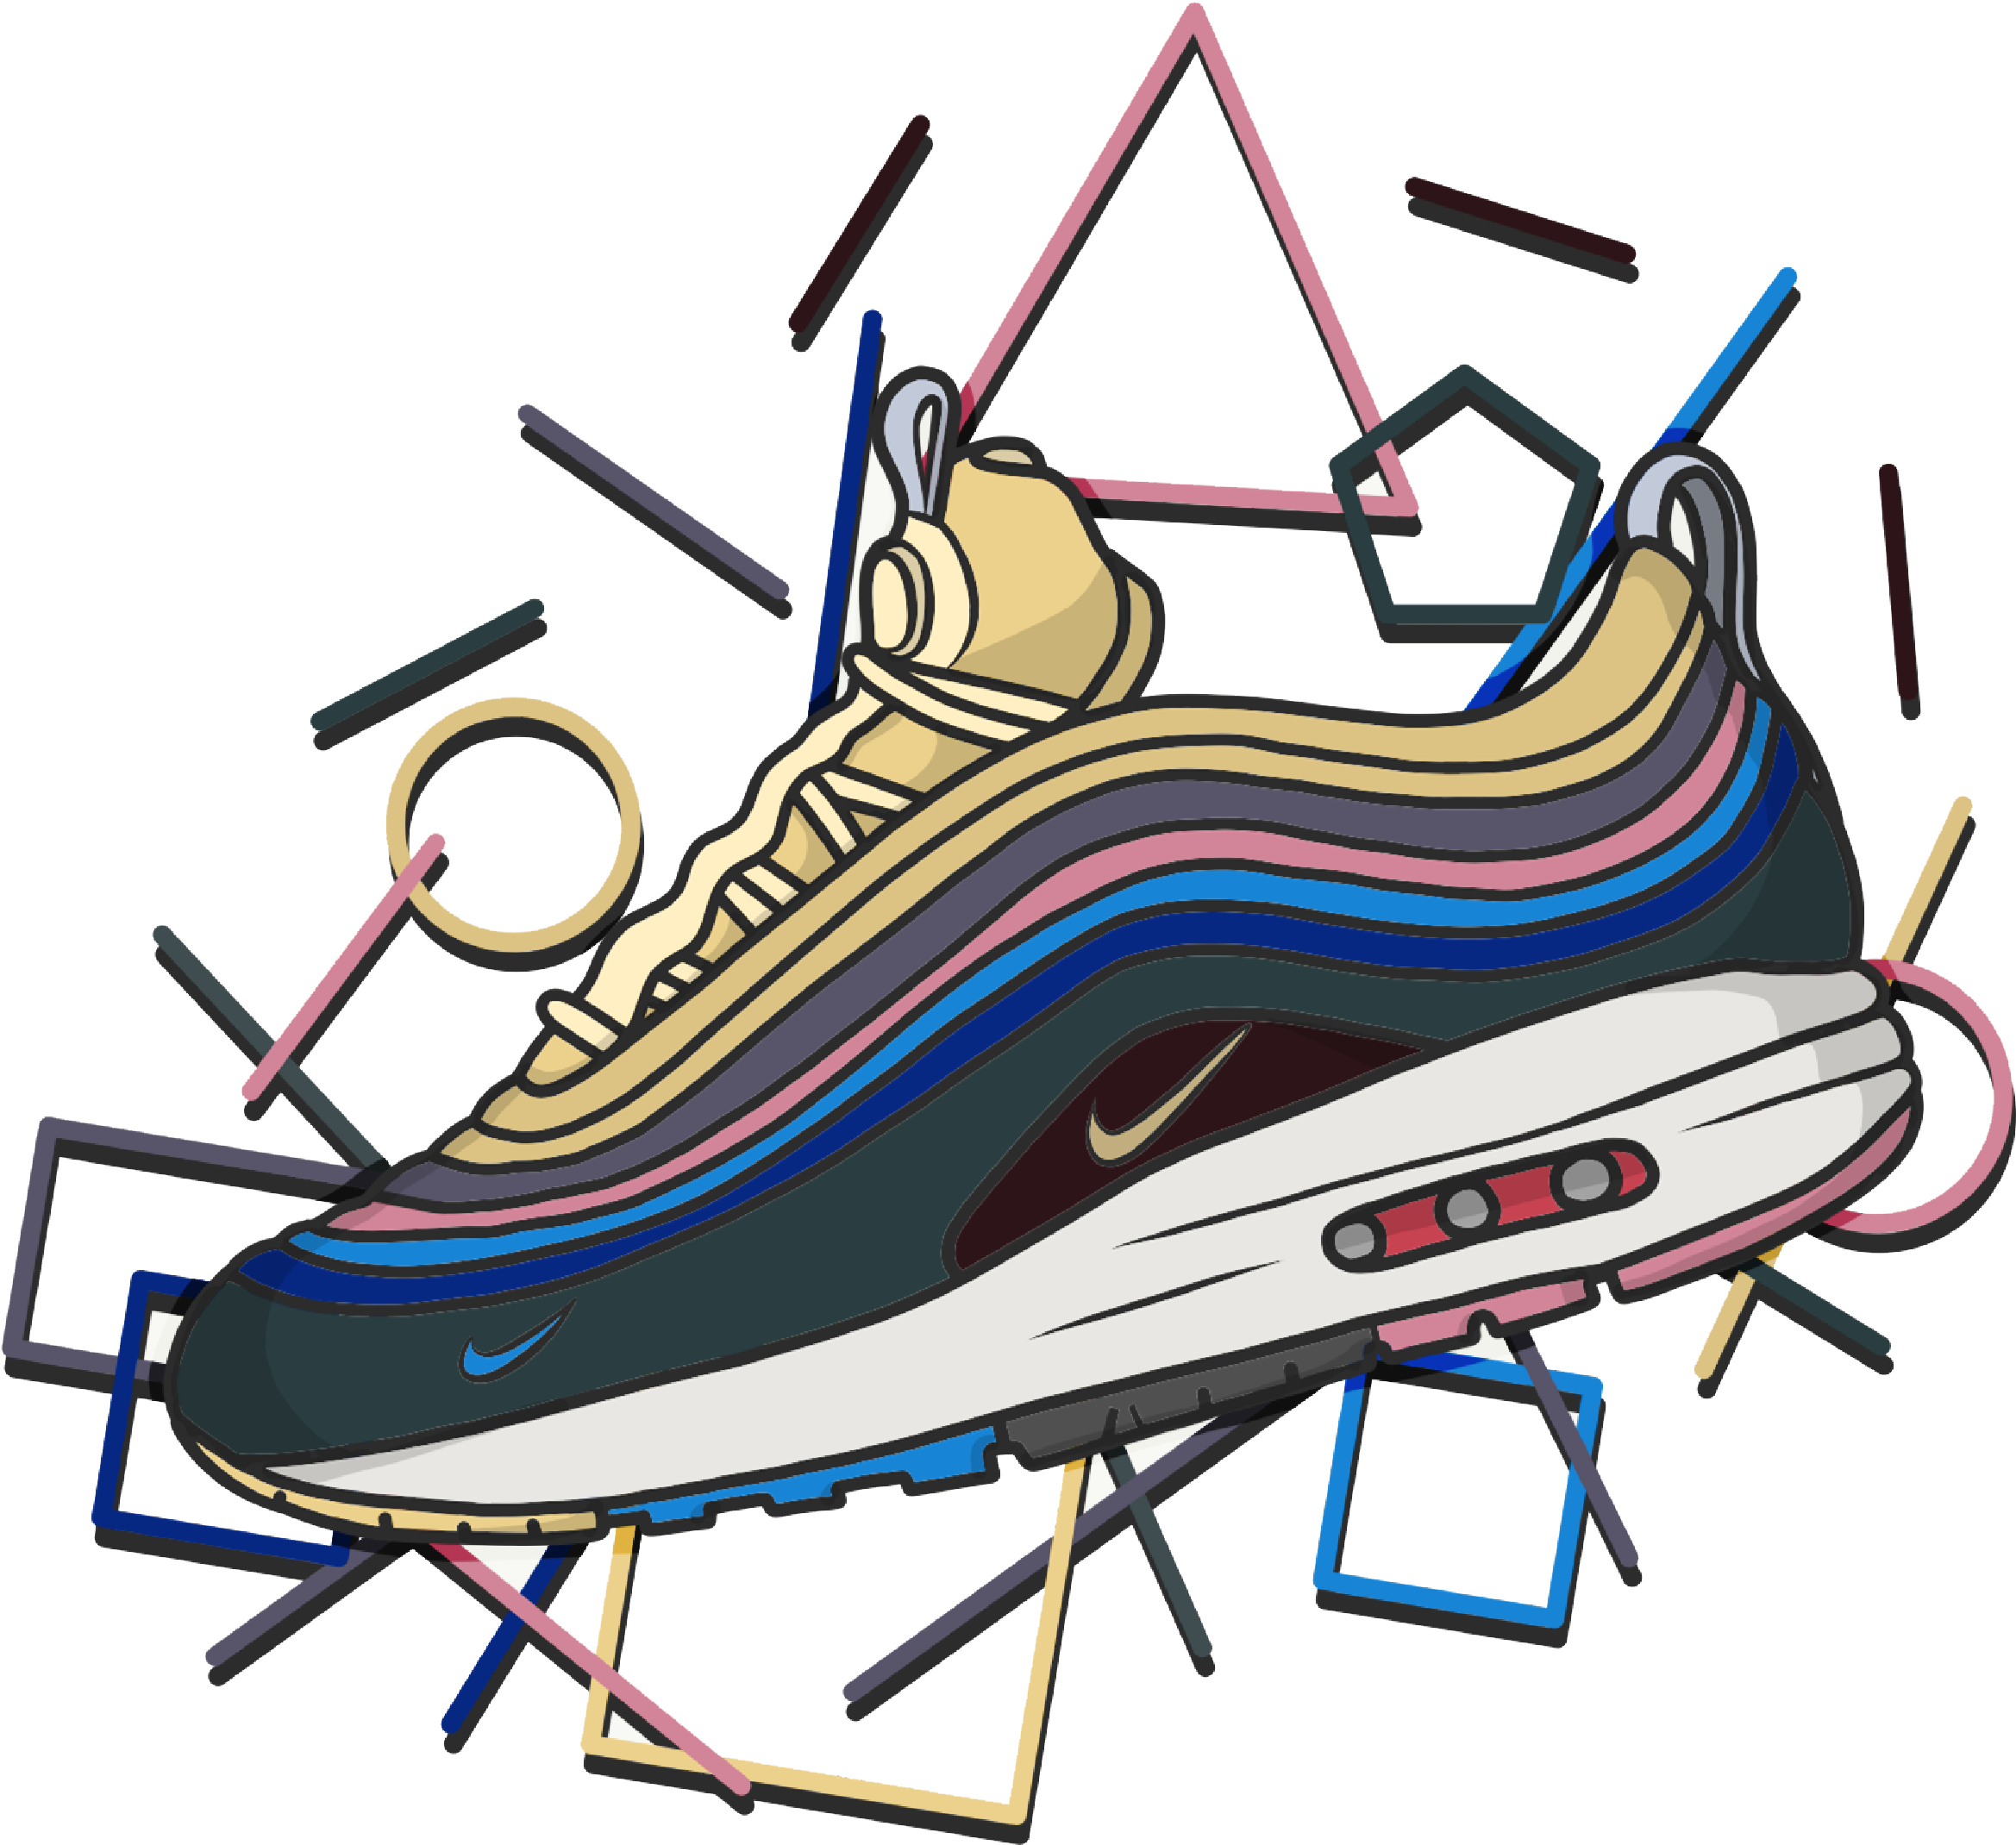 Wotherspoon.